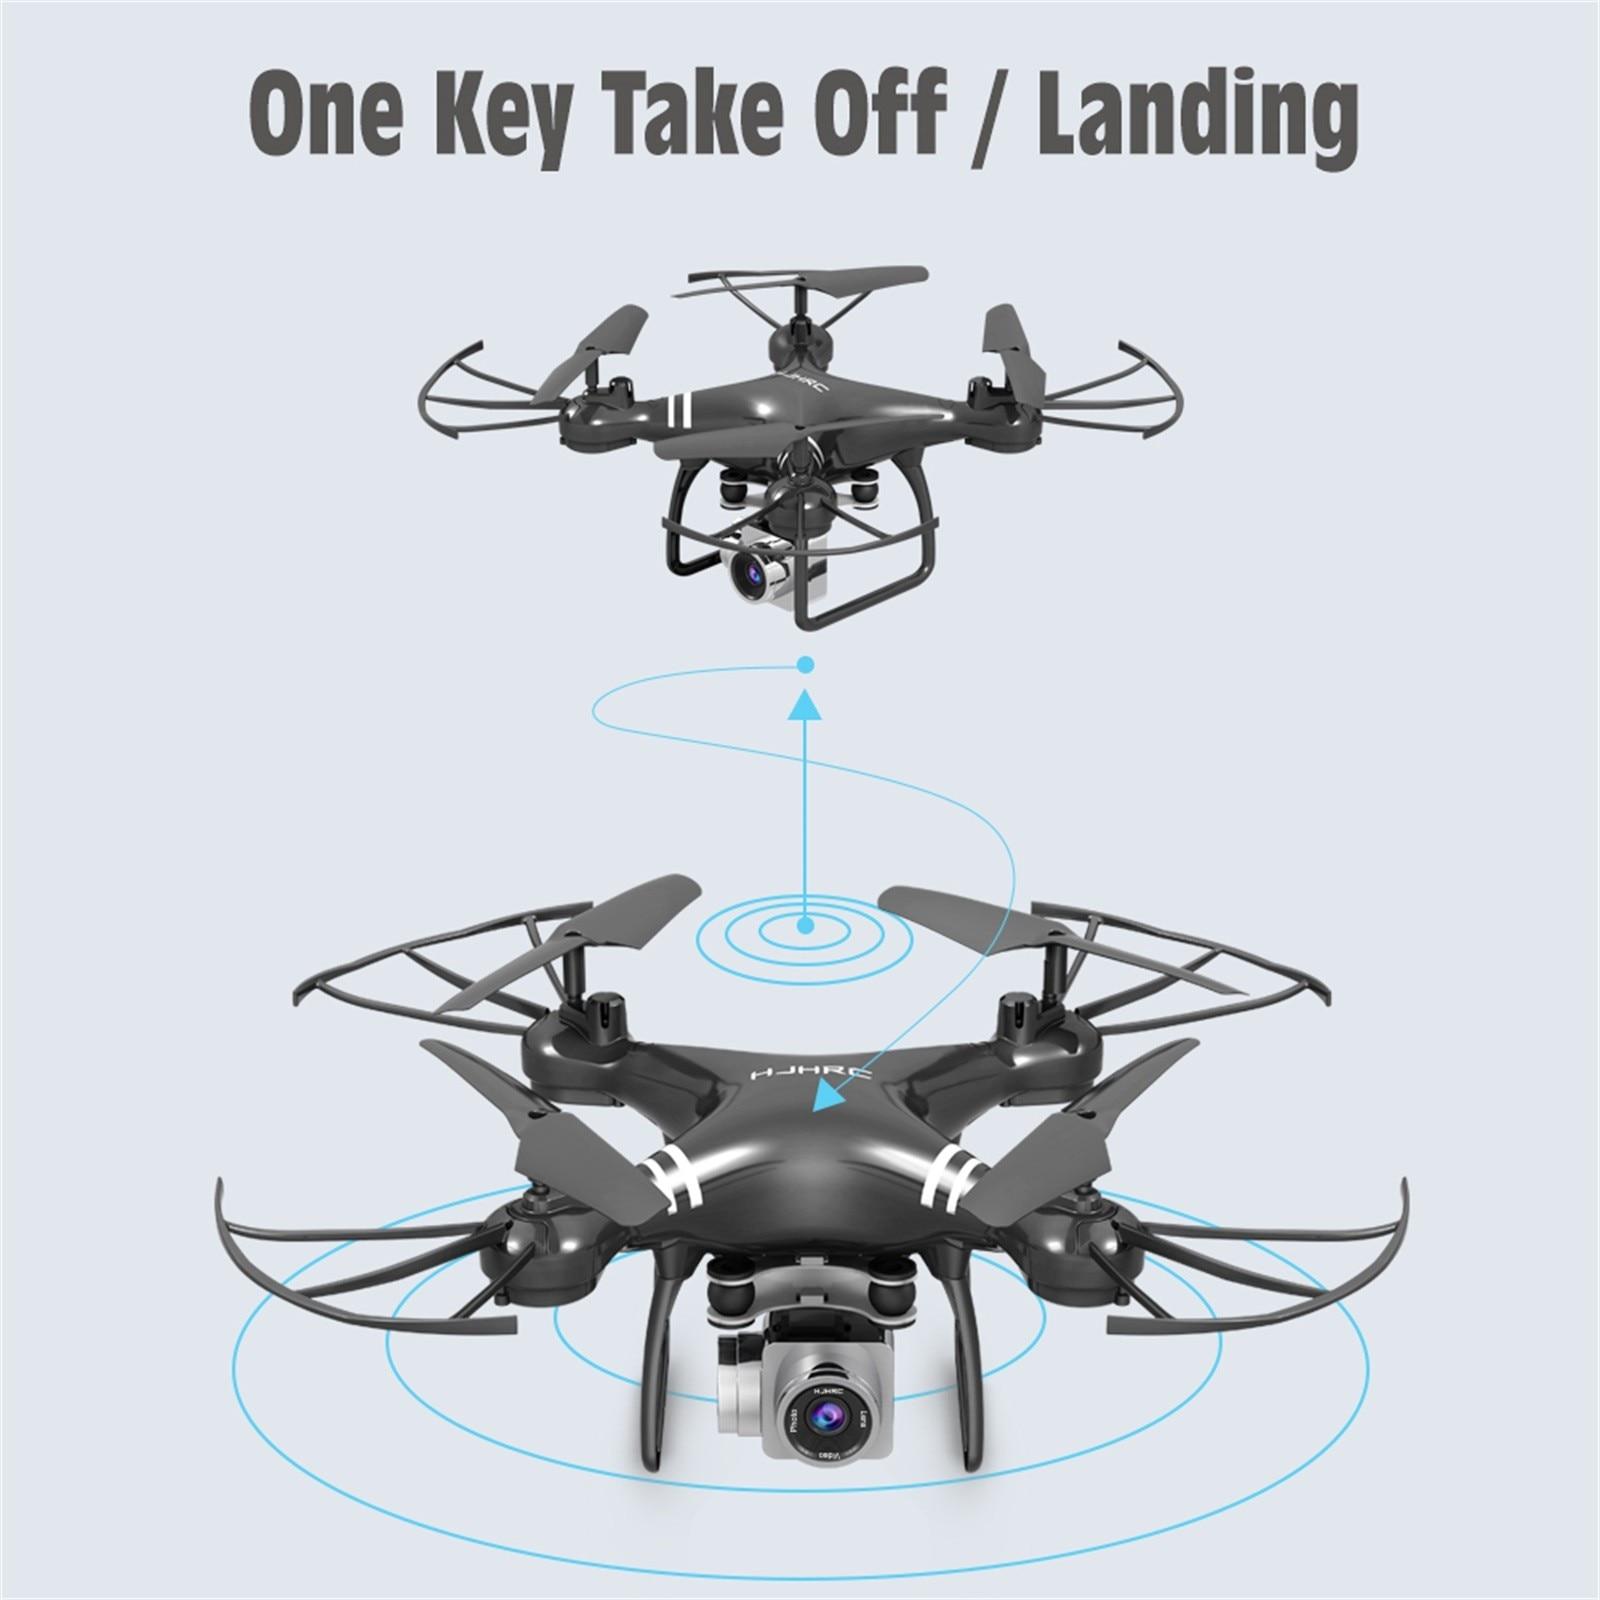 H003837e948ef4d93b047a0842dcd927e6 - Hjhrc Four-axis Aerial Photography Aircraft Drone With Camera Hd 4k Wifi Fpv Foldable Drone Height Holding Headless Quadcopter